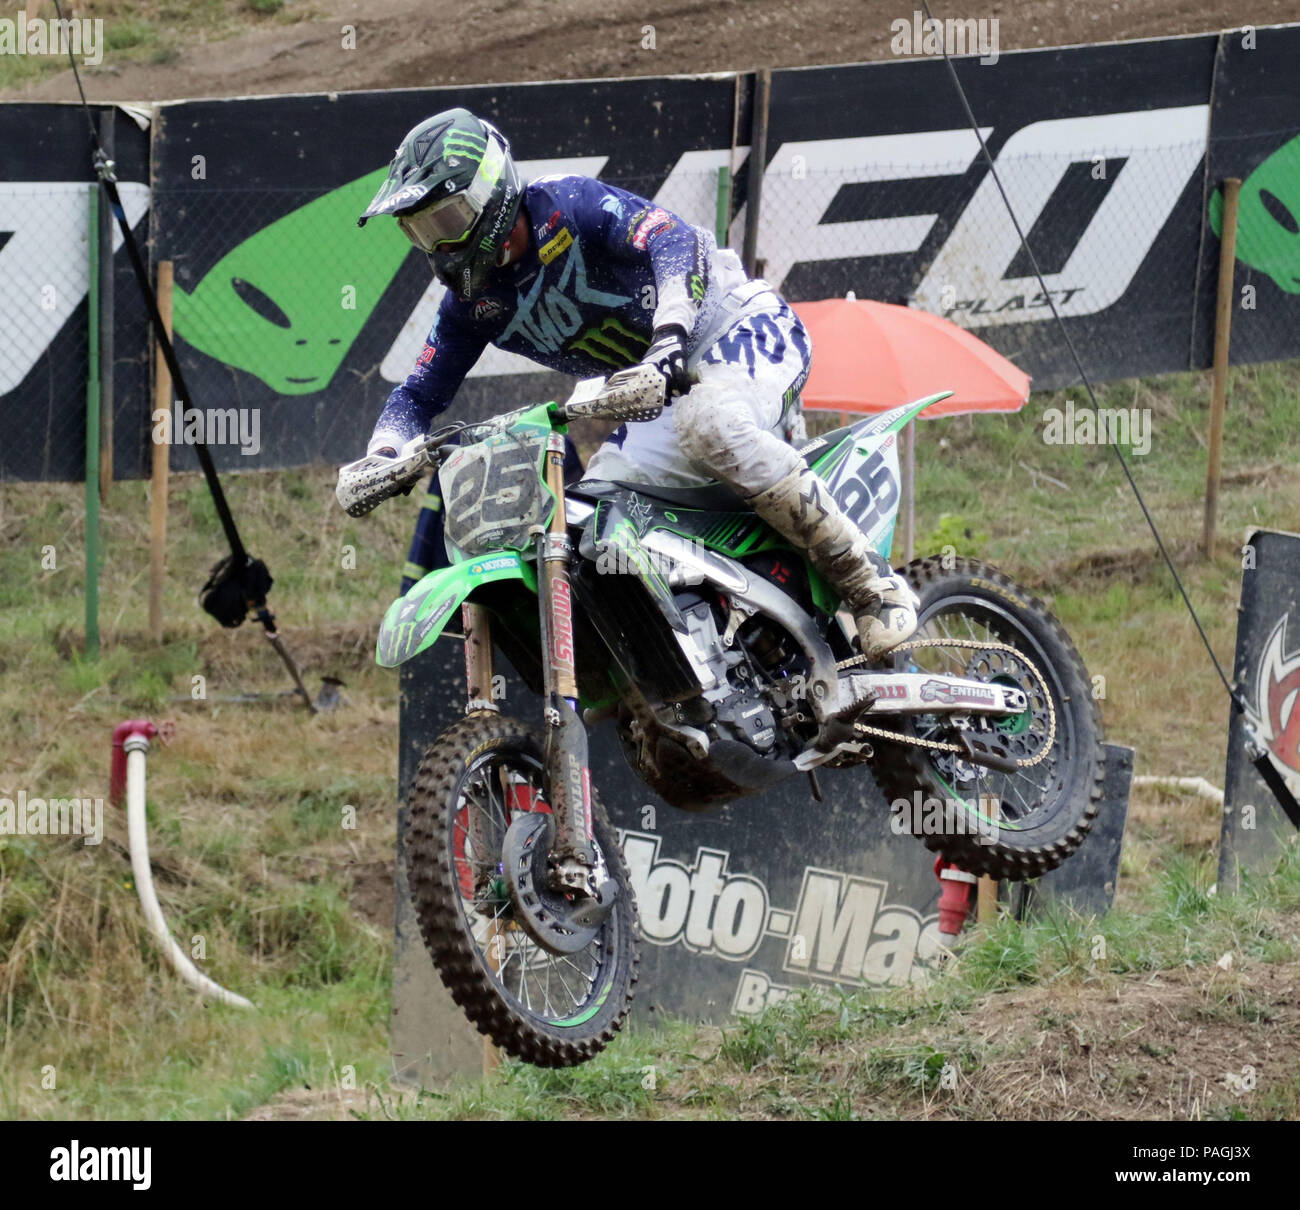 Loket, Czech Republic. 22nd July, 2018. Clement DESALLE (BEL/Monster Energy Kawasaki Racing Team), .Motocross World Championship, MX 1, first race, .Loket, Czech Republic, July 22, 2018, Credit: Wolfgang Fehrmann/ZUMA Wire/Alamy Live News Stock Photo